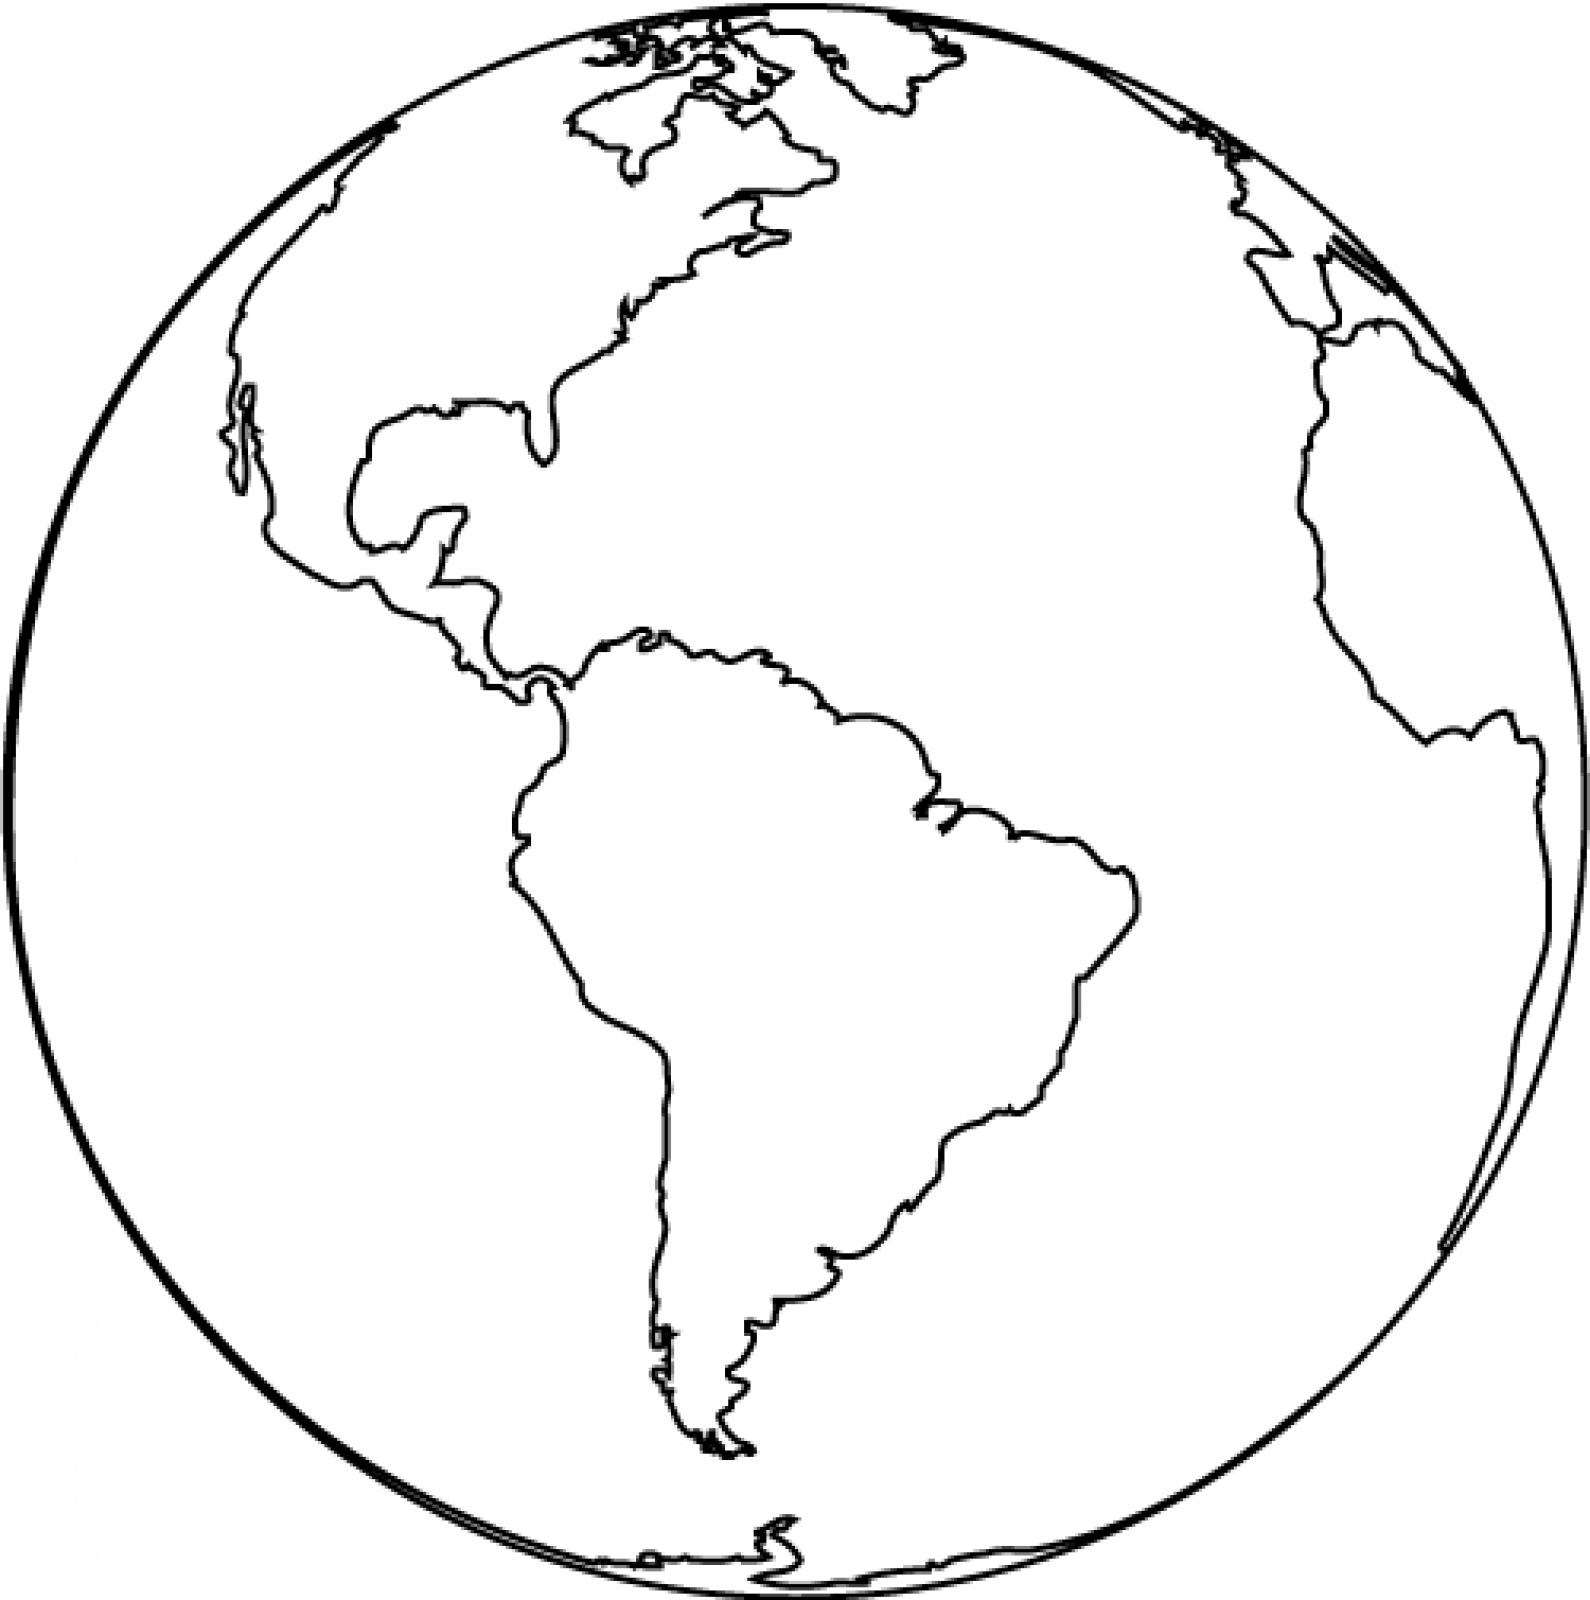 Planet Earth clipart colored #4